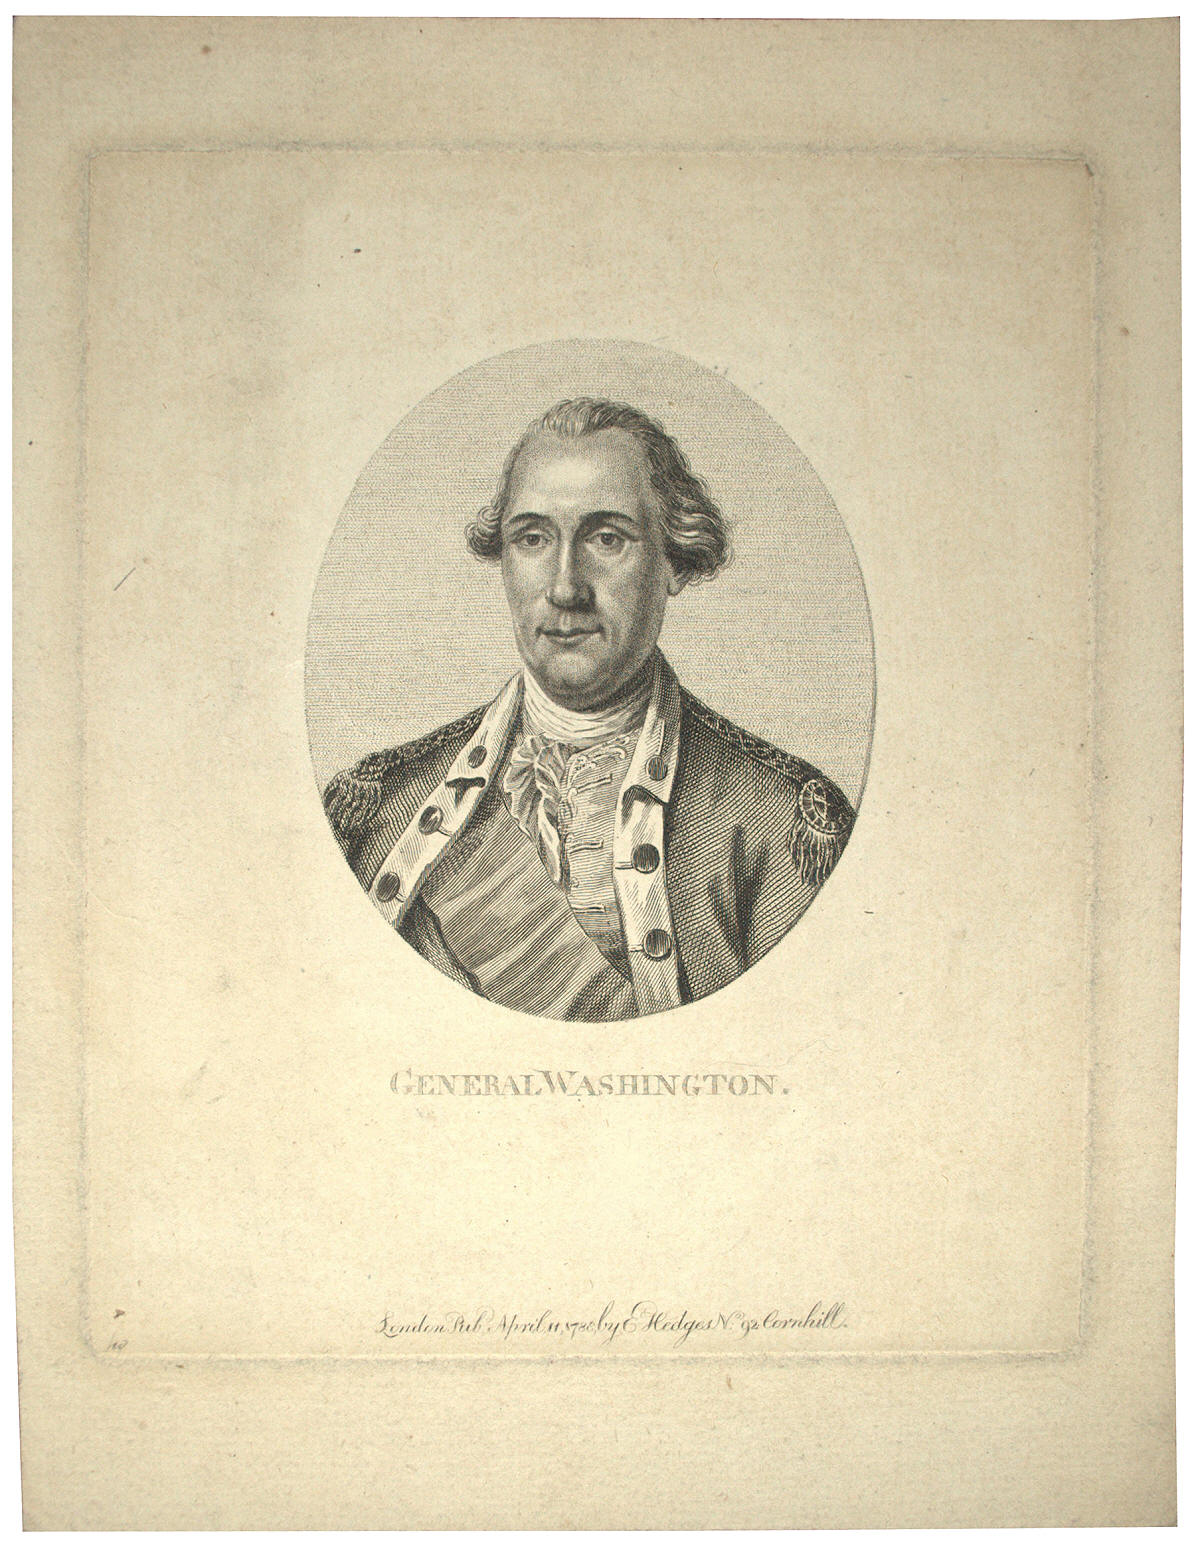 George Washington engraving after Charles Willson Peale